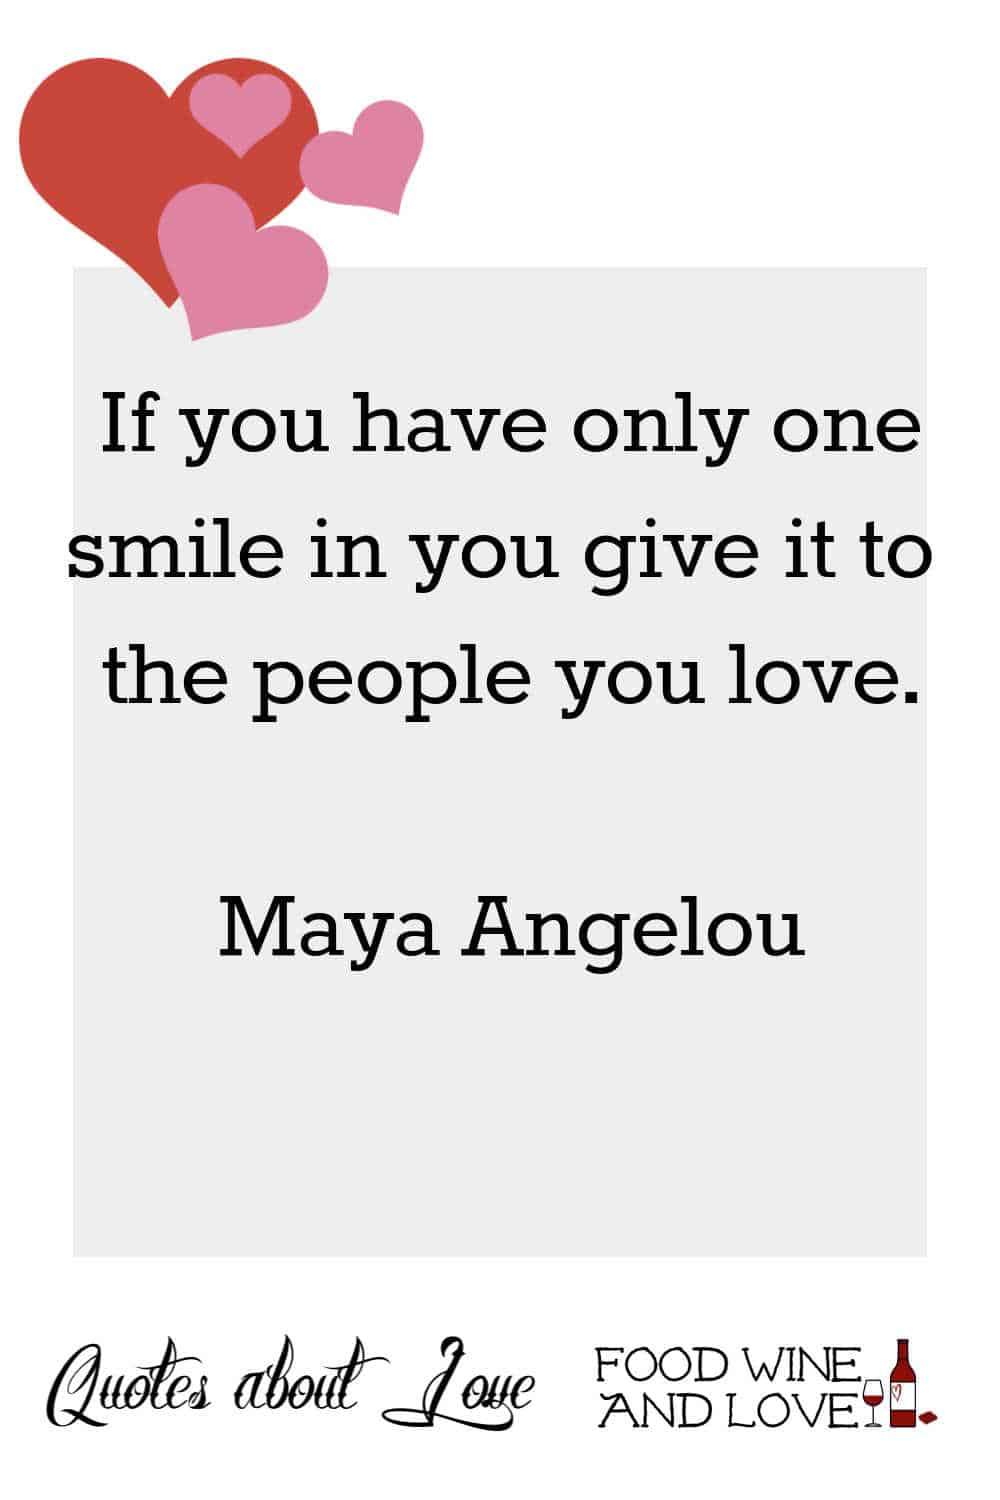 If you have only one smile in you give it to the people you love.  Maya Angelou